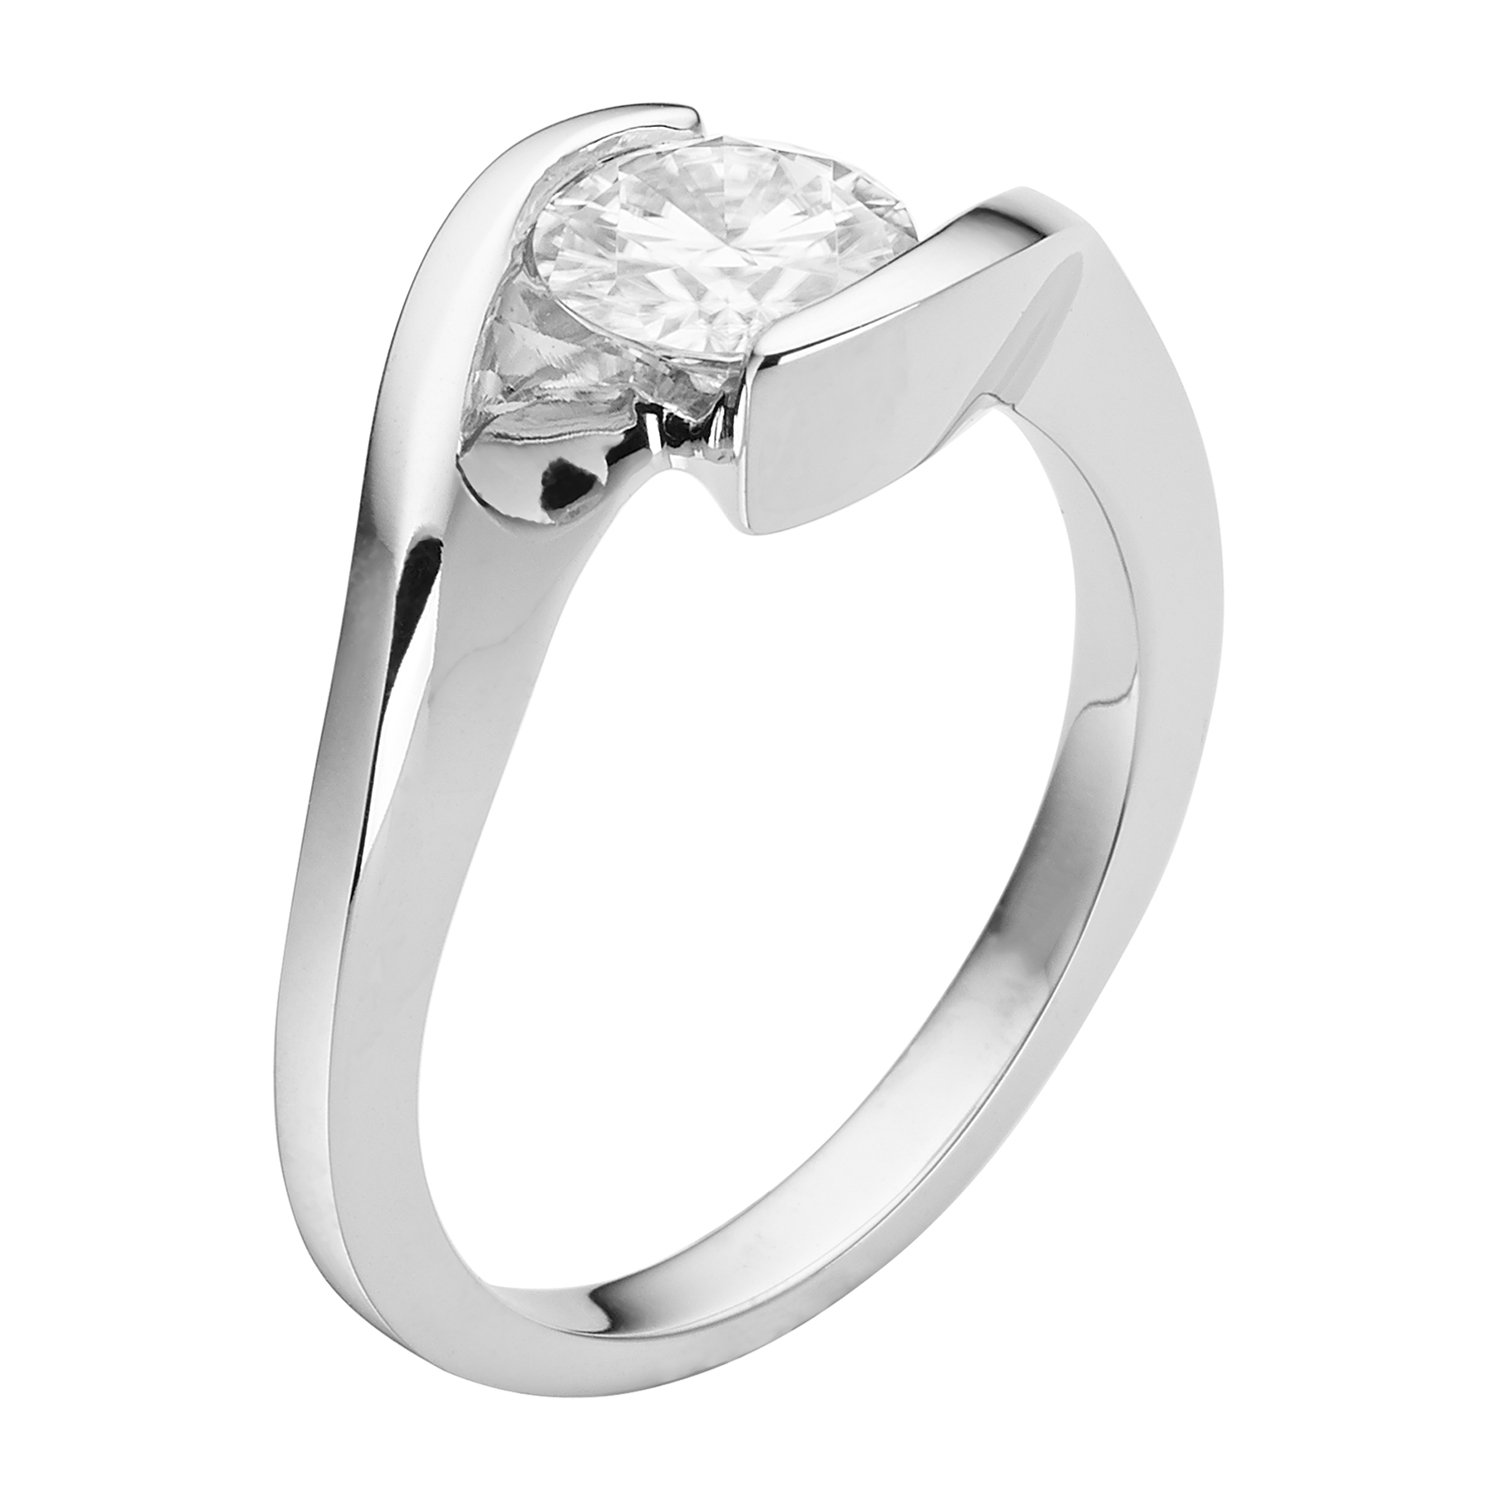 Forever Brilliant Round 6.5mm Moissanite Engagement Ring - size 8, 1.00ct DEW By Charles & Colvard by Charles & Colvard (Image #3)